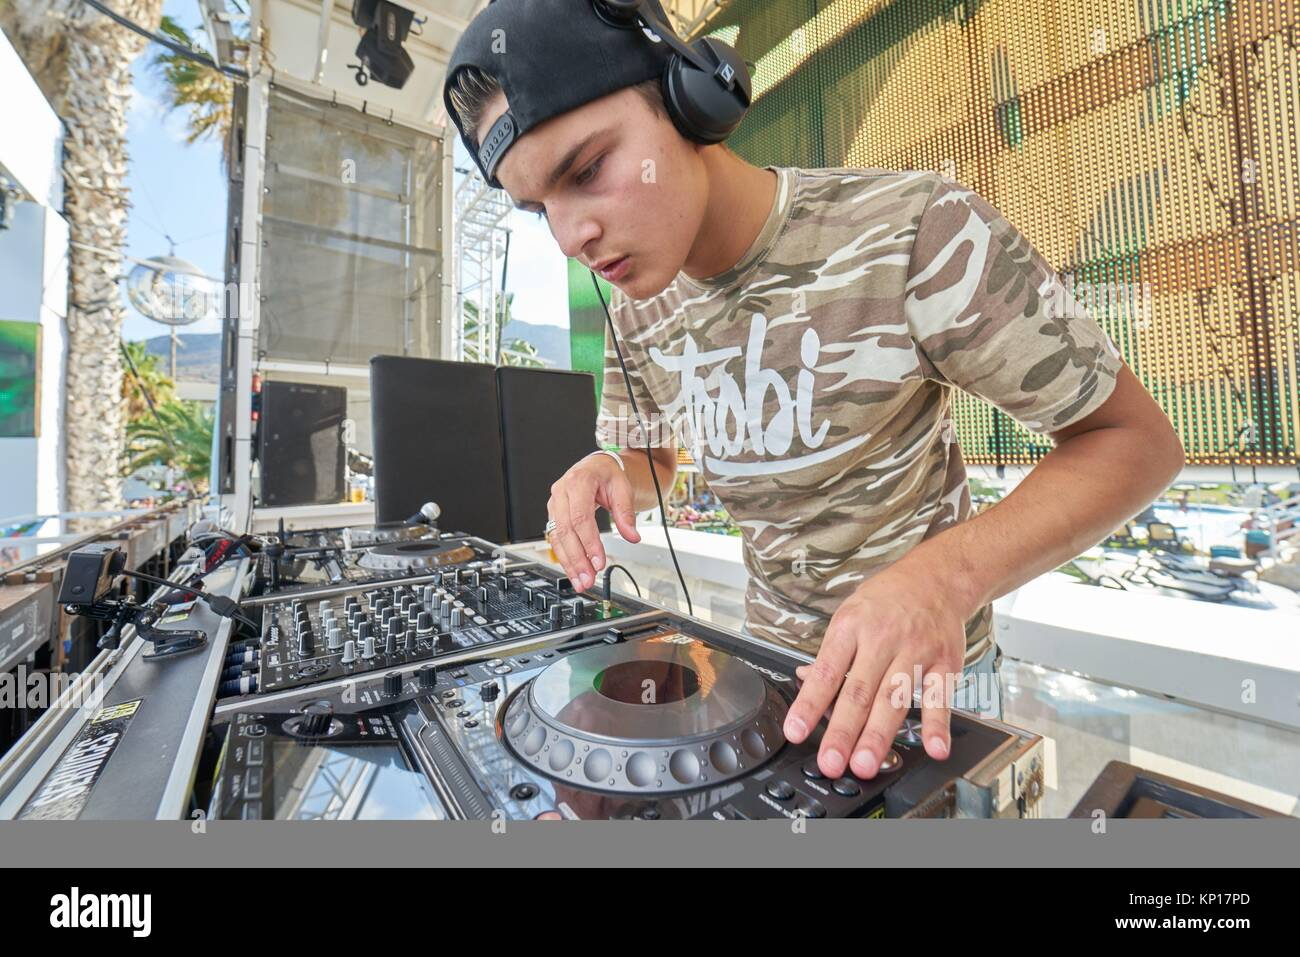 DJ Trobi playing at music festival Starbeach on 18. August 2017, in Hersonissos, Crete, Greece - Stock Image